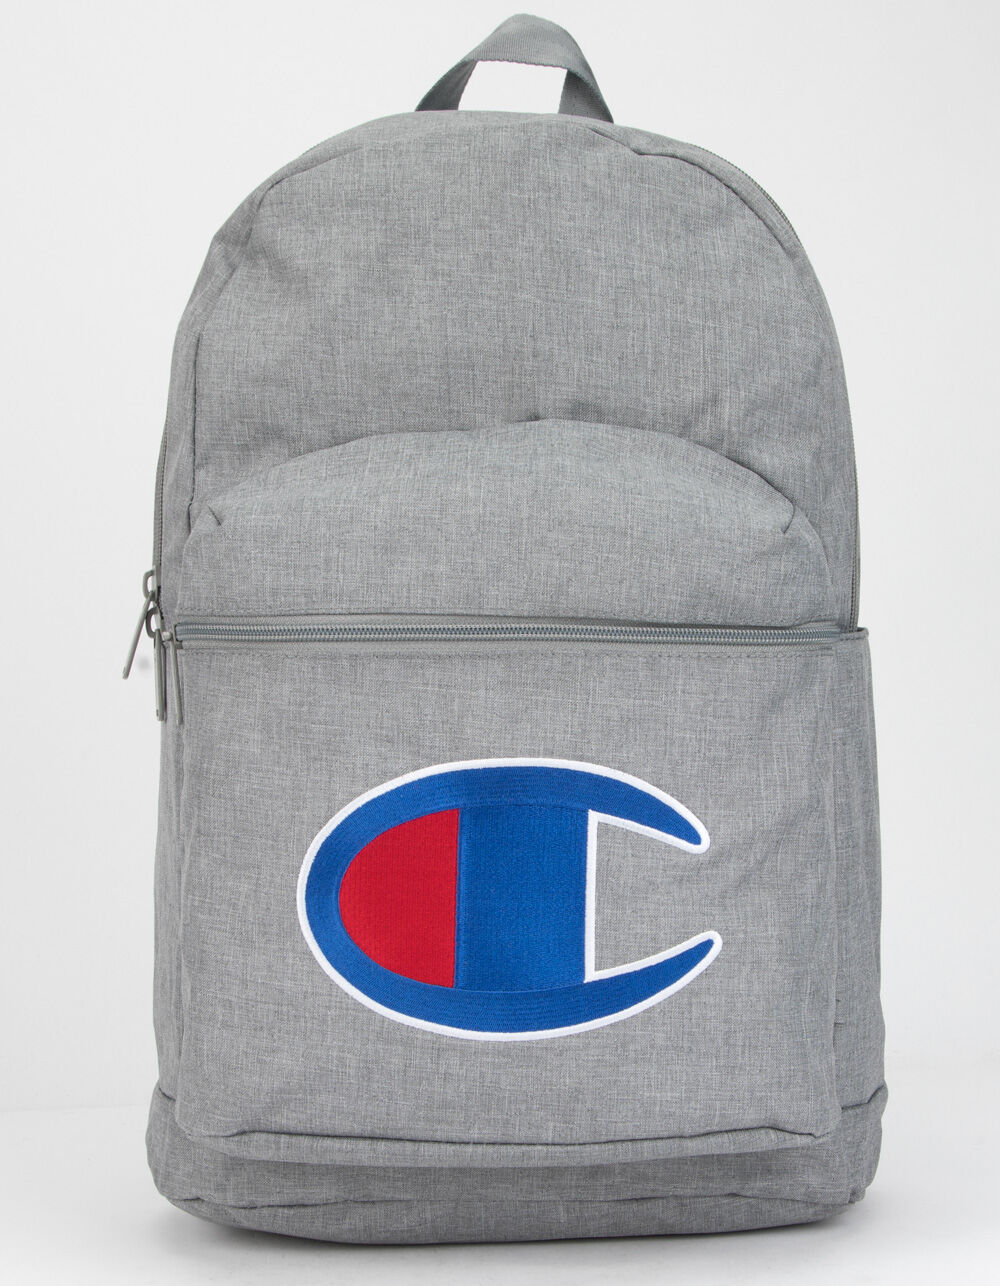 CHAMPION Supercize 2.0 Heather Gray Backpack